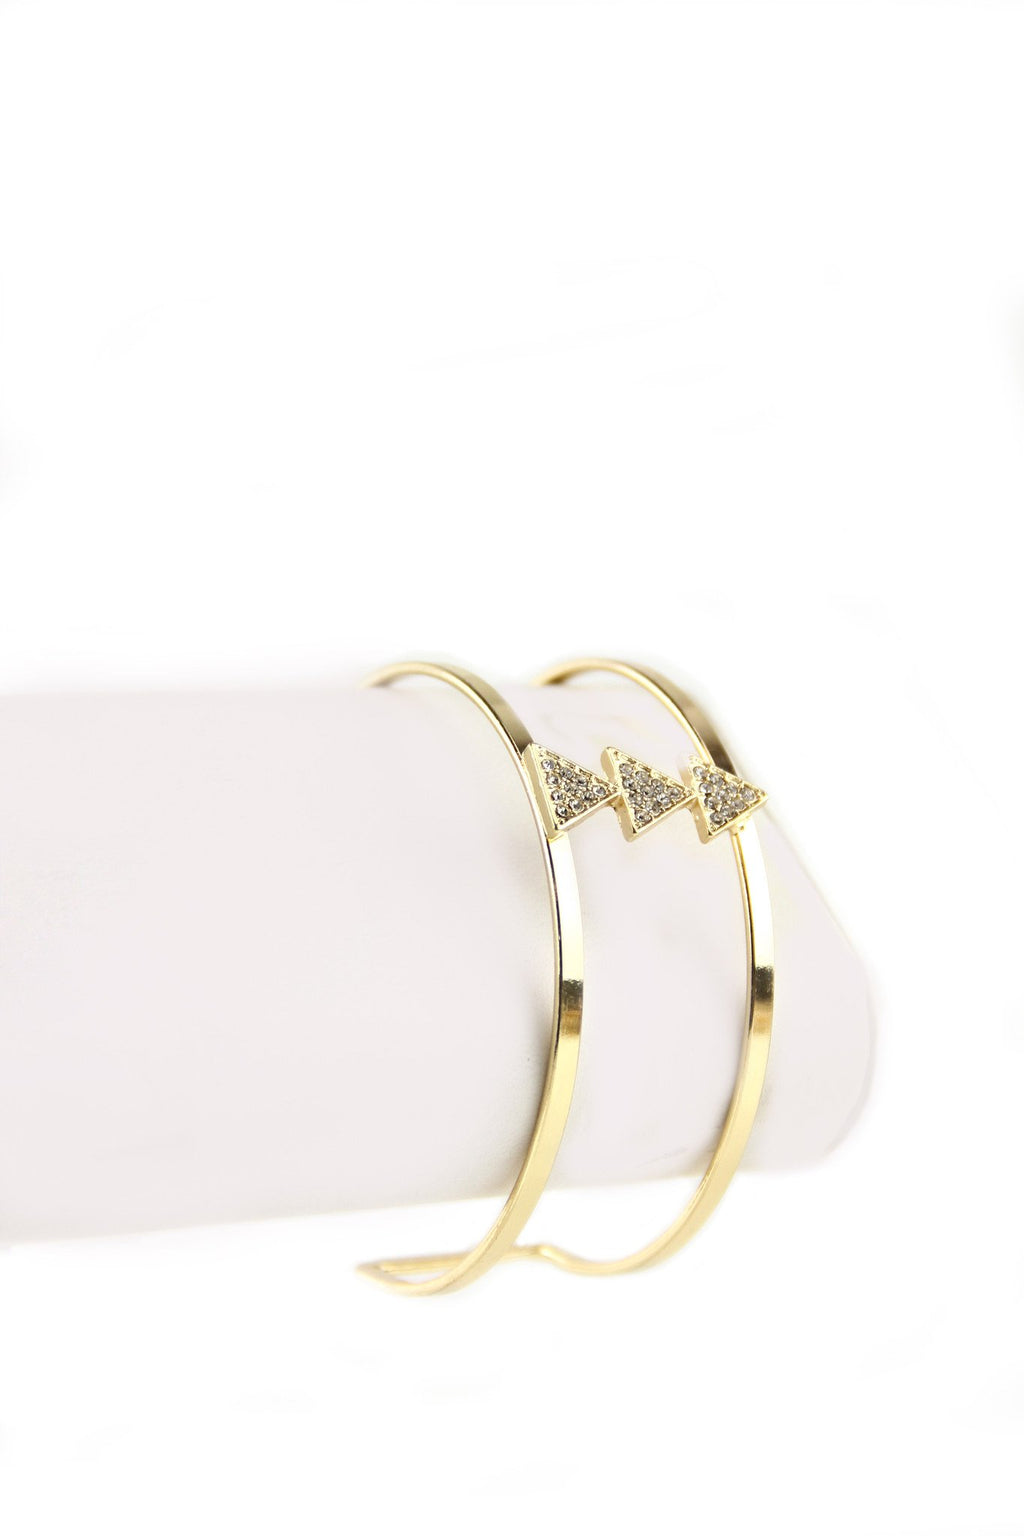 Cutout Triangle Cuff Bracelet - Haute & Rebellious